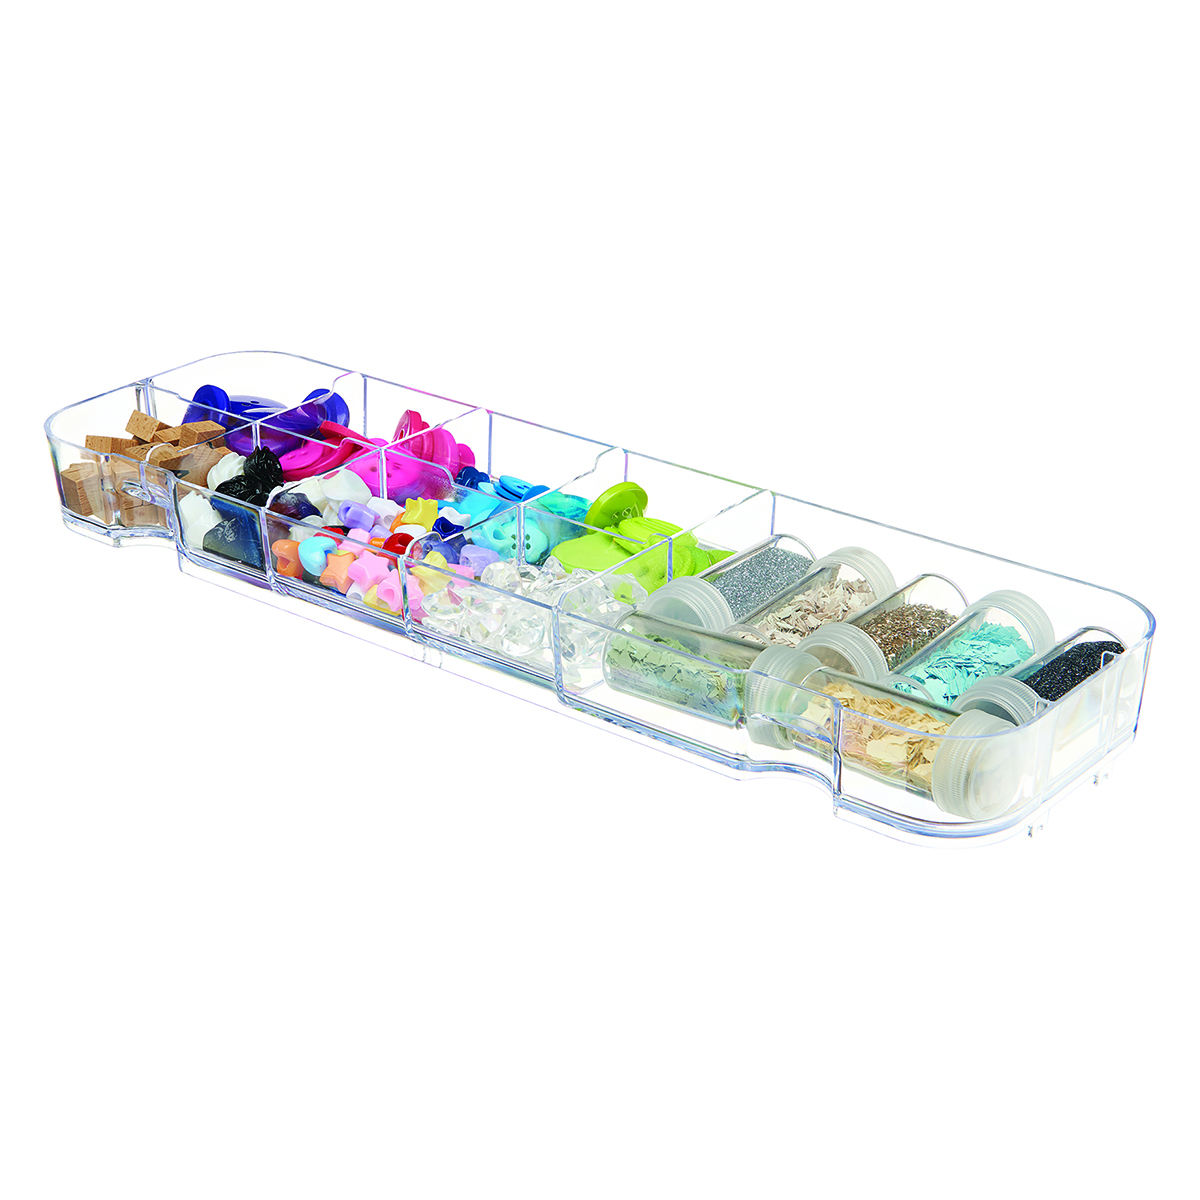 Deflecto Caddy Accessory Tray Insert